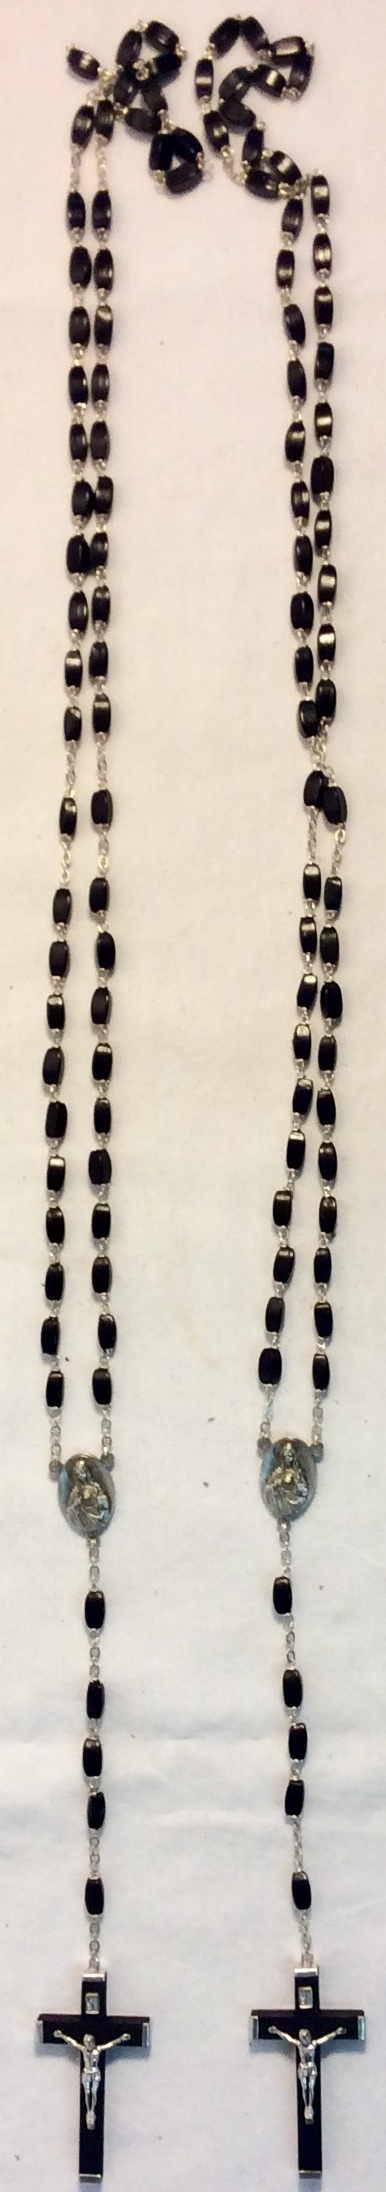 Black plastic and metal rosaries